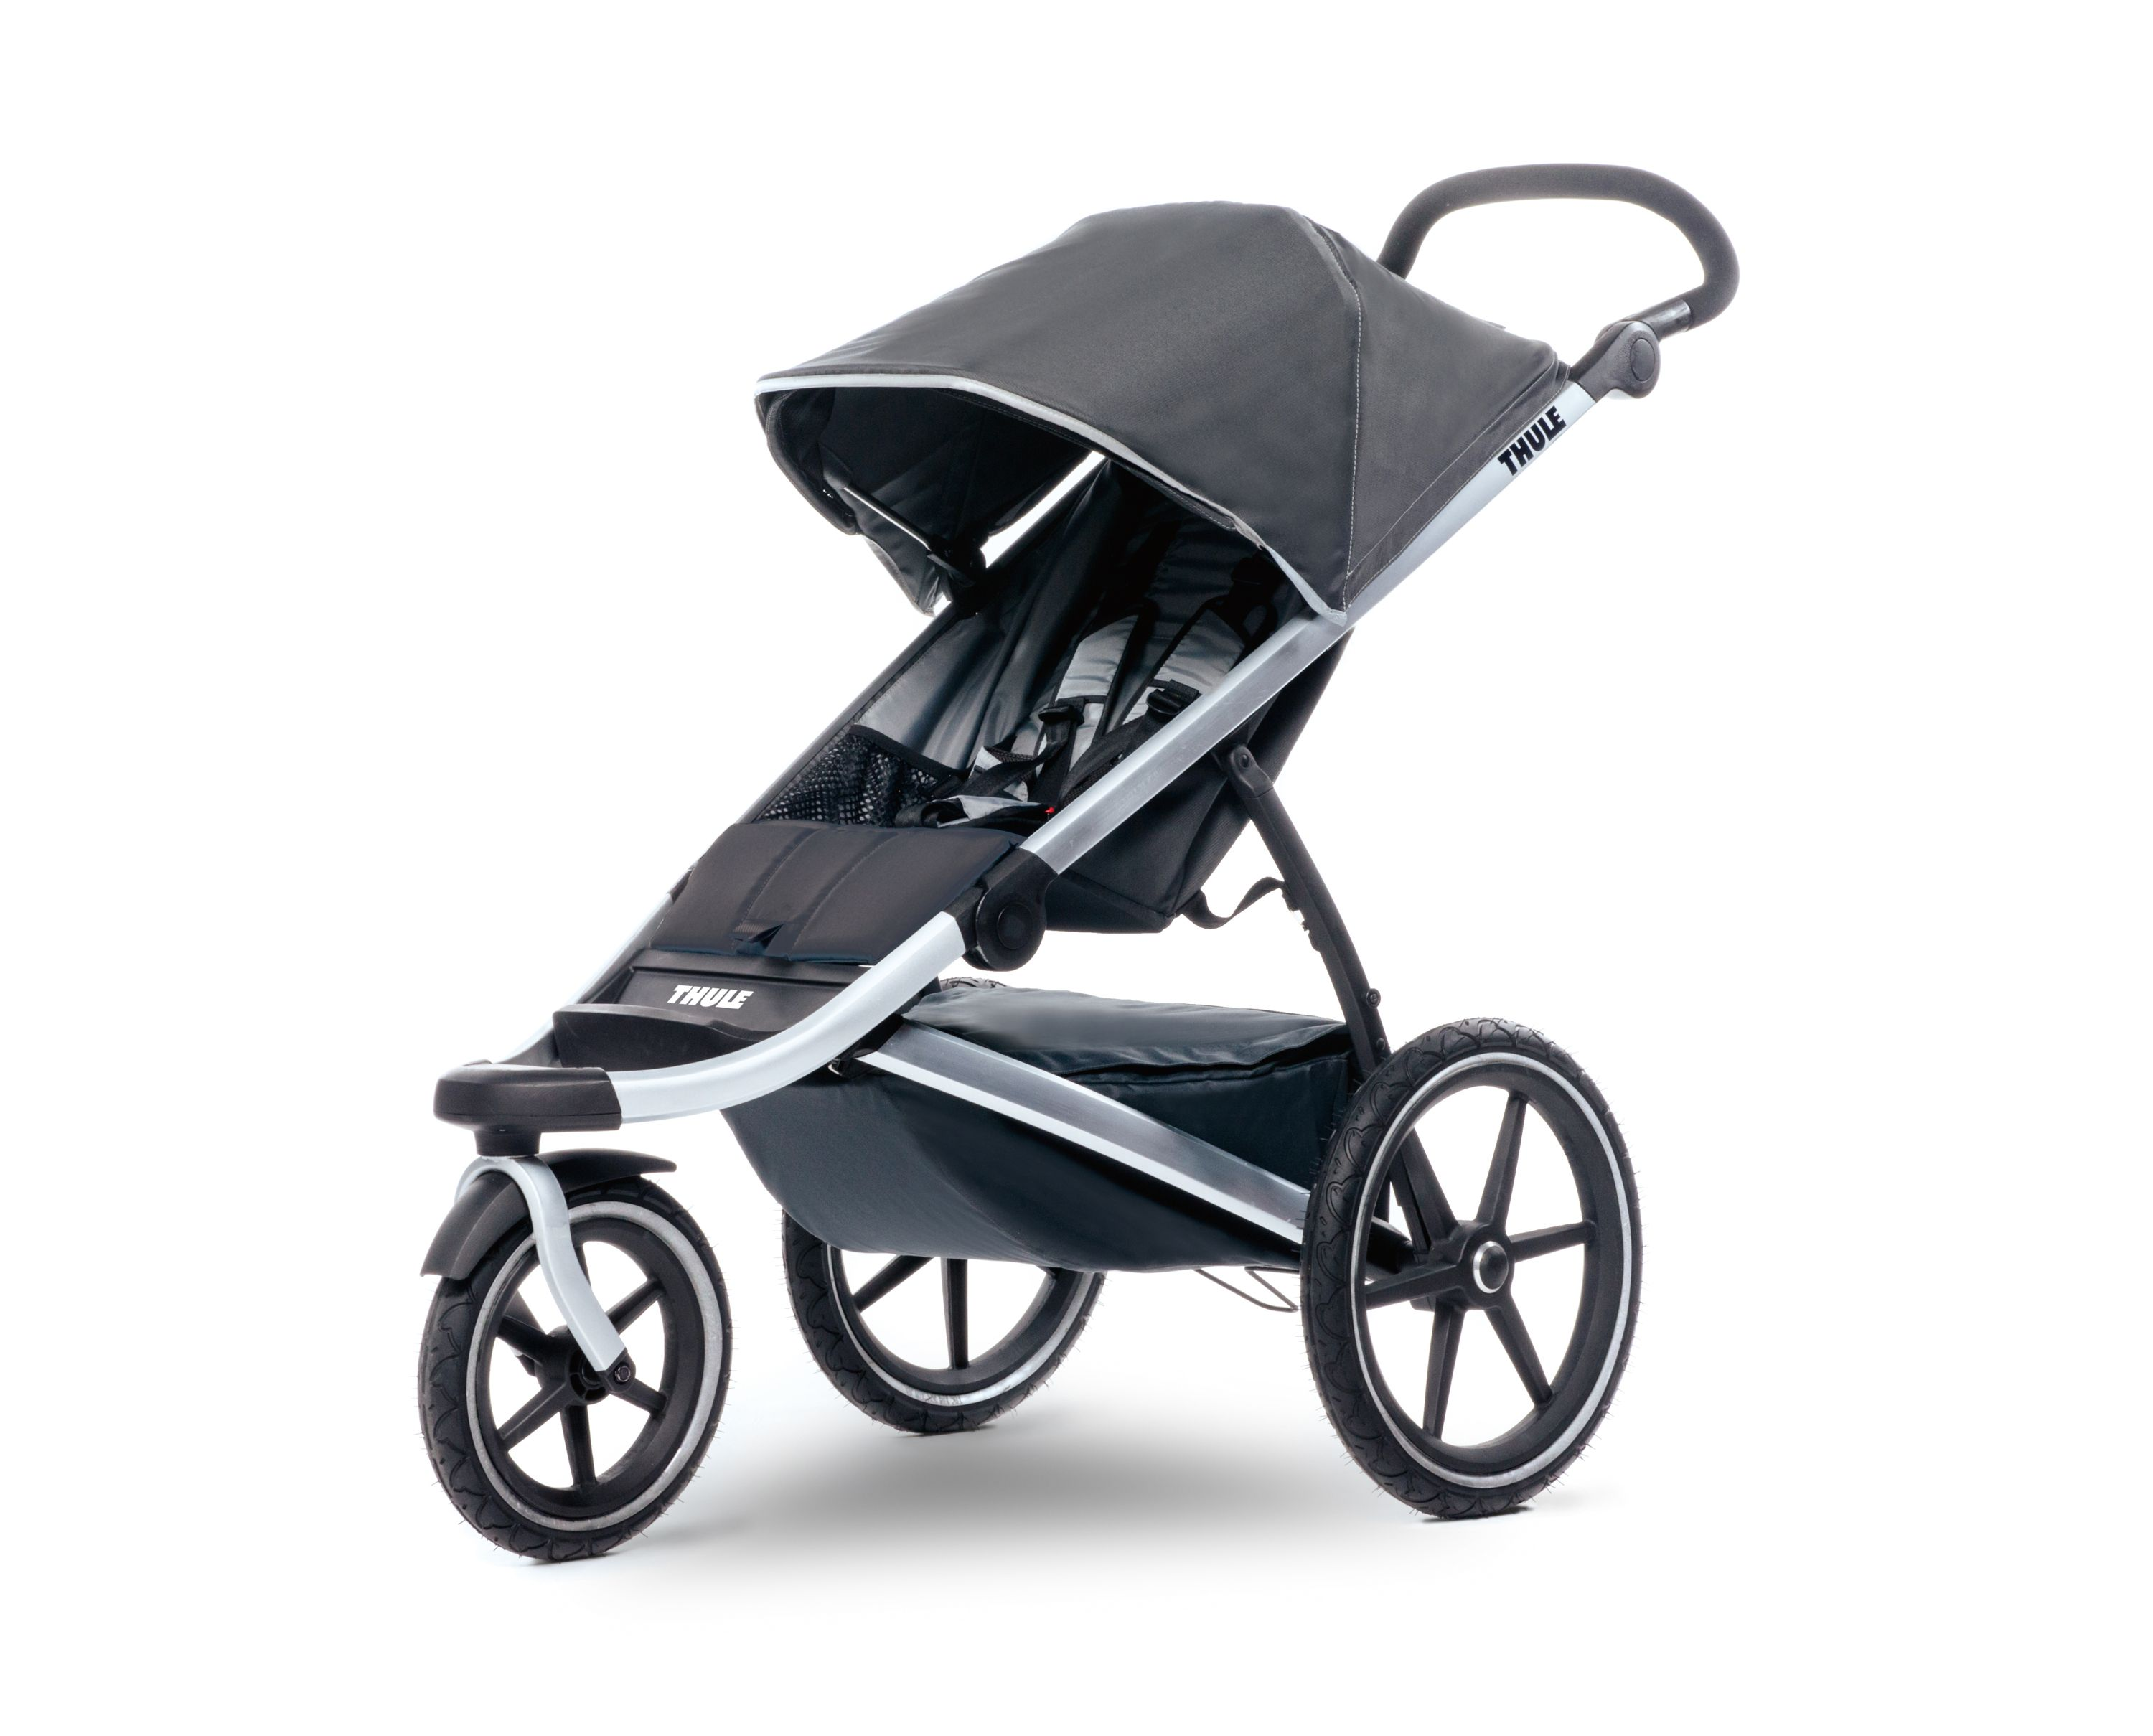 Thule Urban Glide Sport Stroller by Thule Child Transport